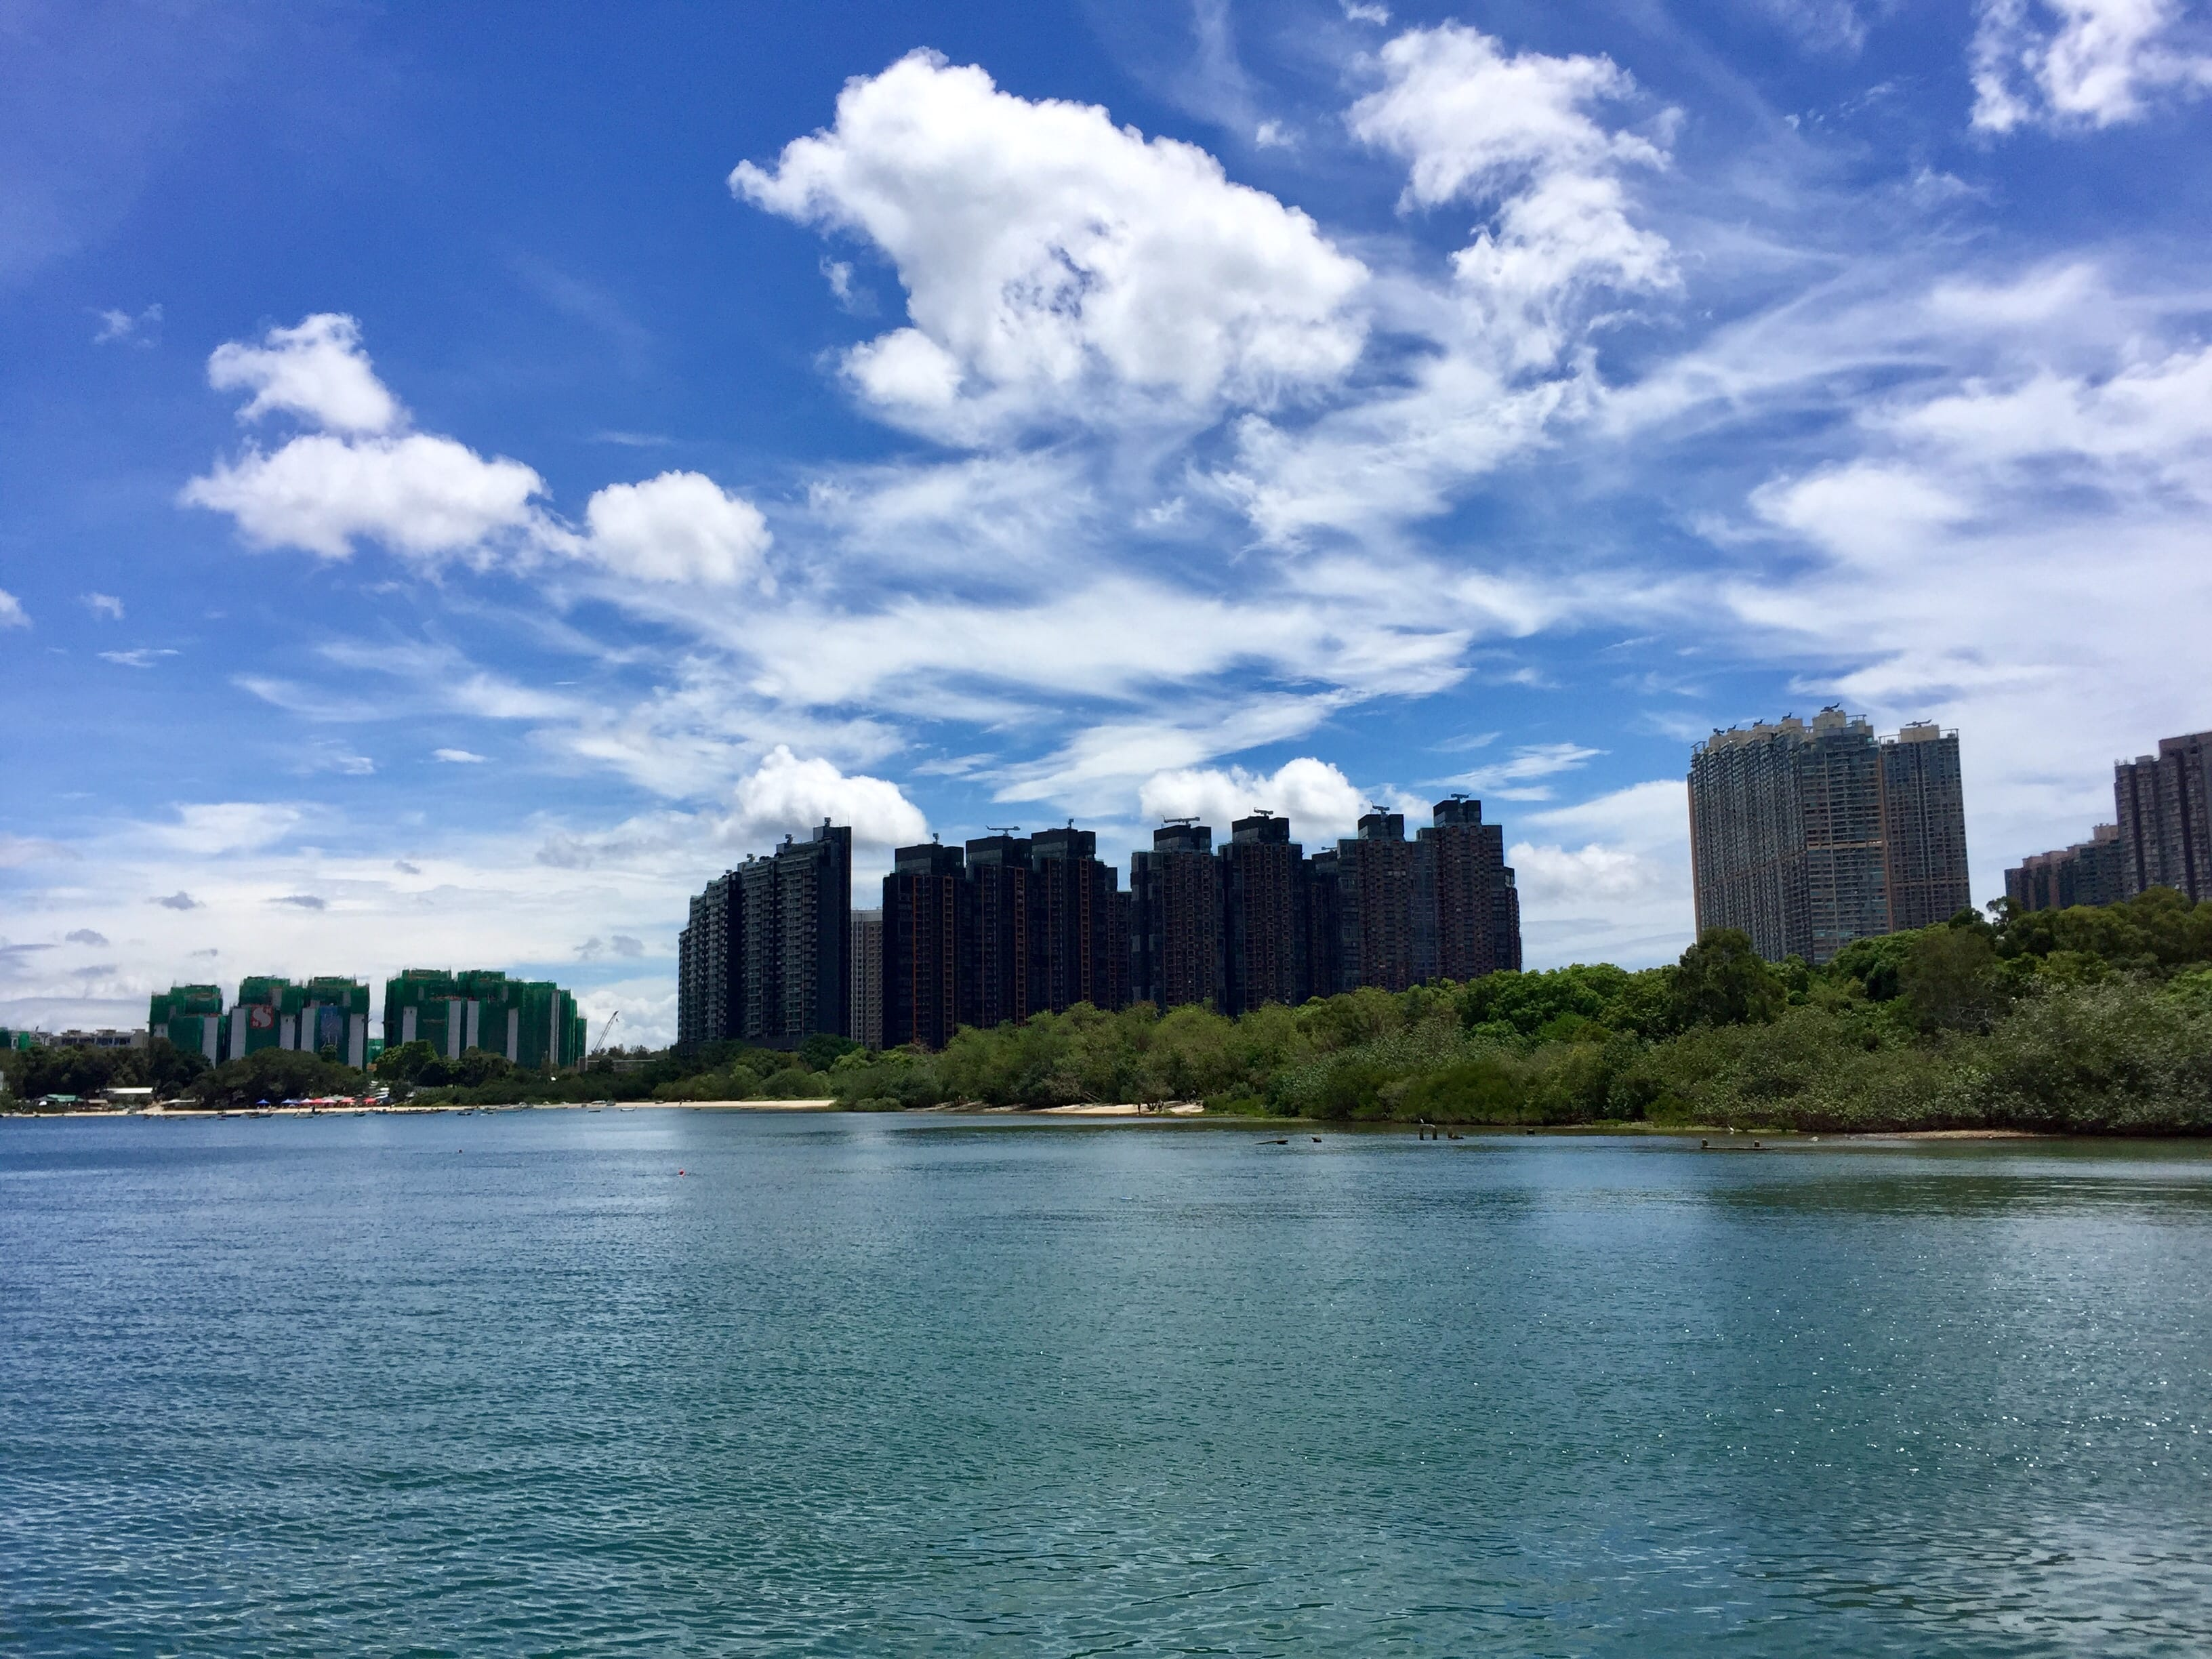 Wu Kai Sha Beach with high rise luxury apartments in the background